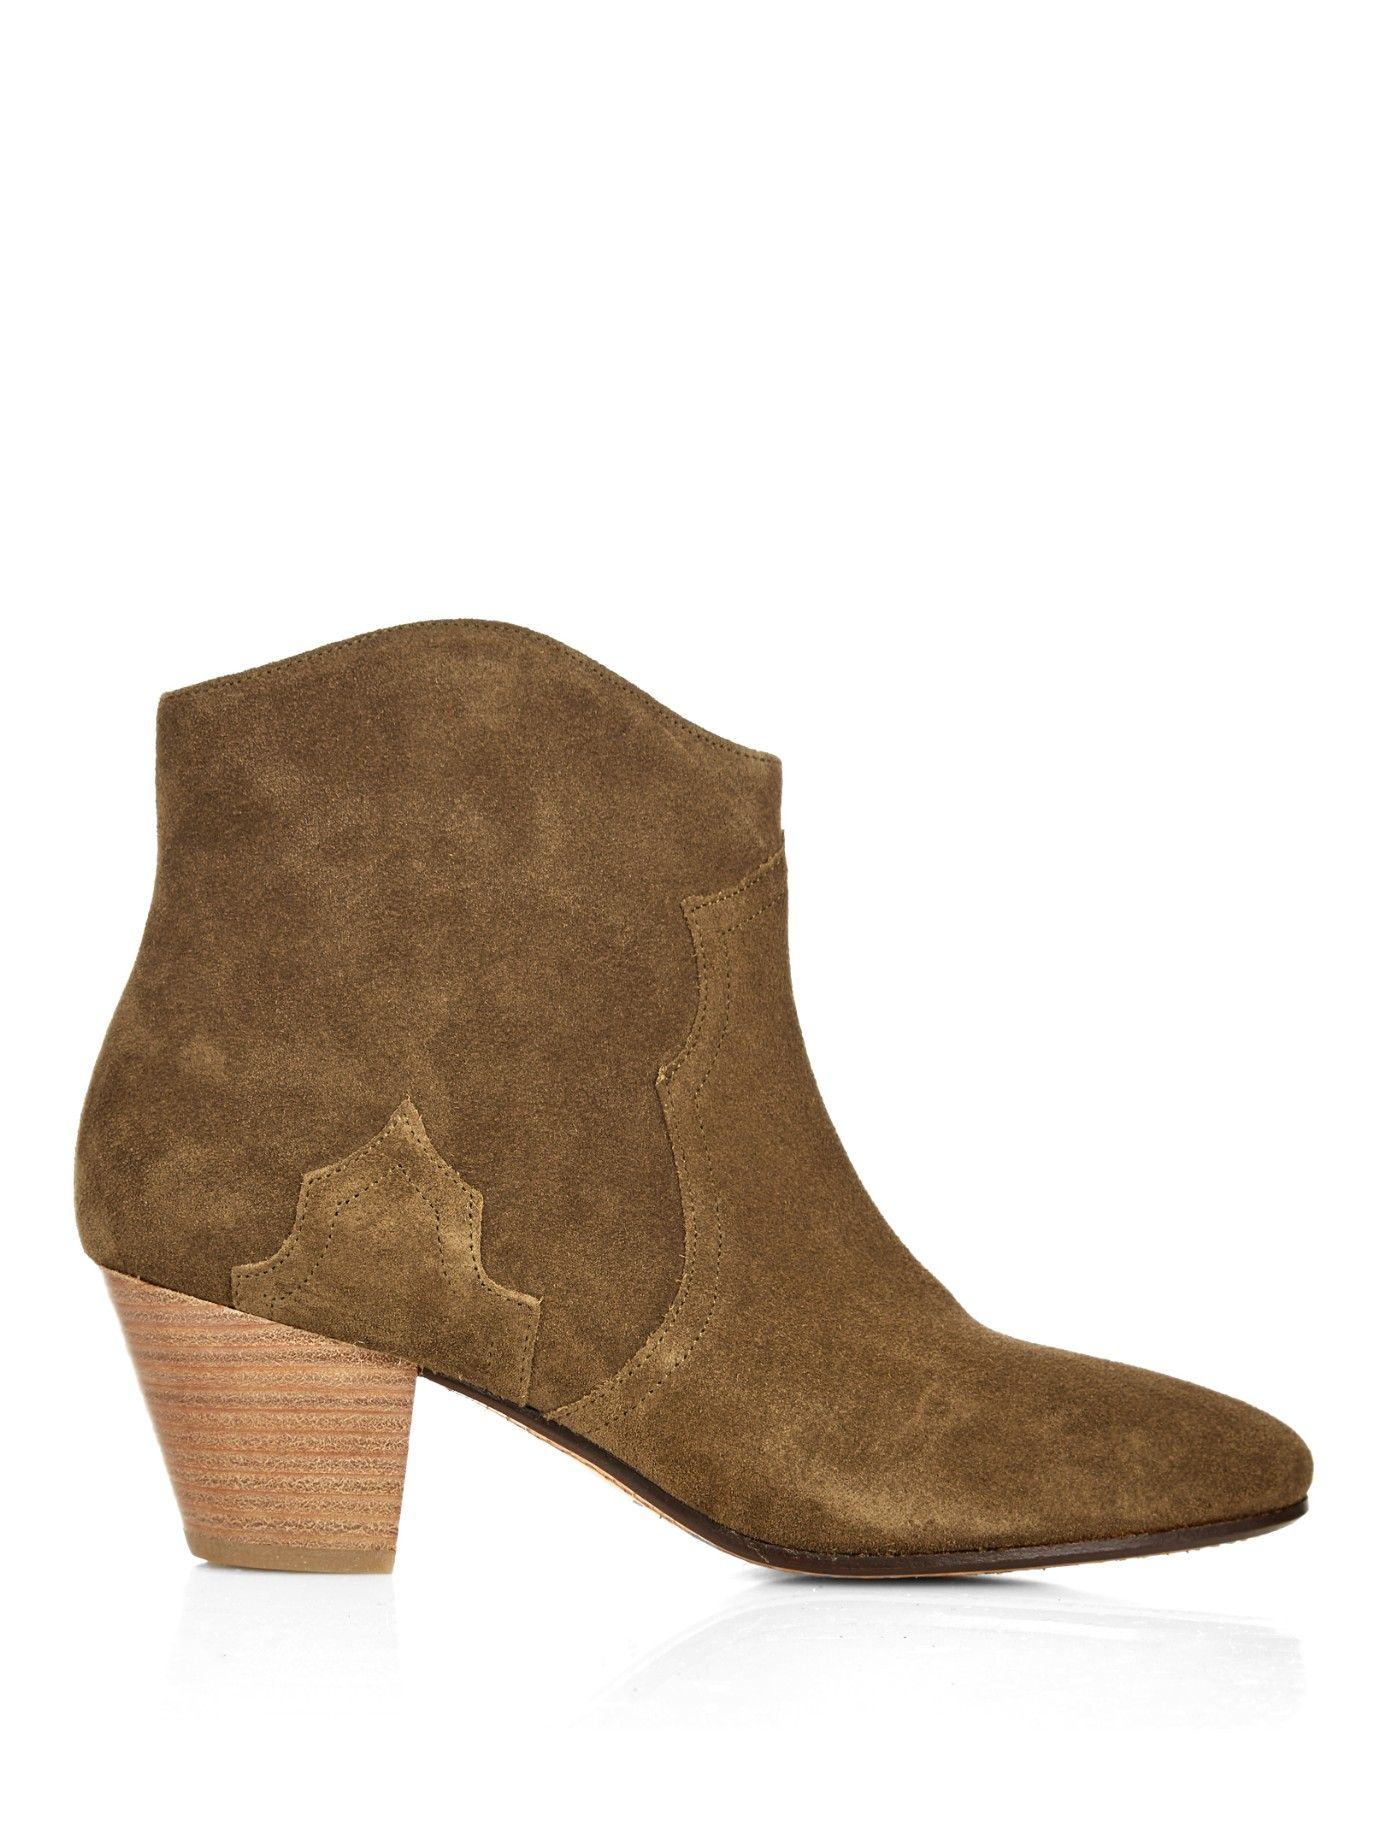 Étoile Dicker suede boots in brown | Isabel Marant | MATCHESFASHION.COM US